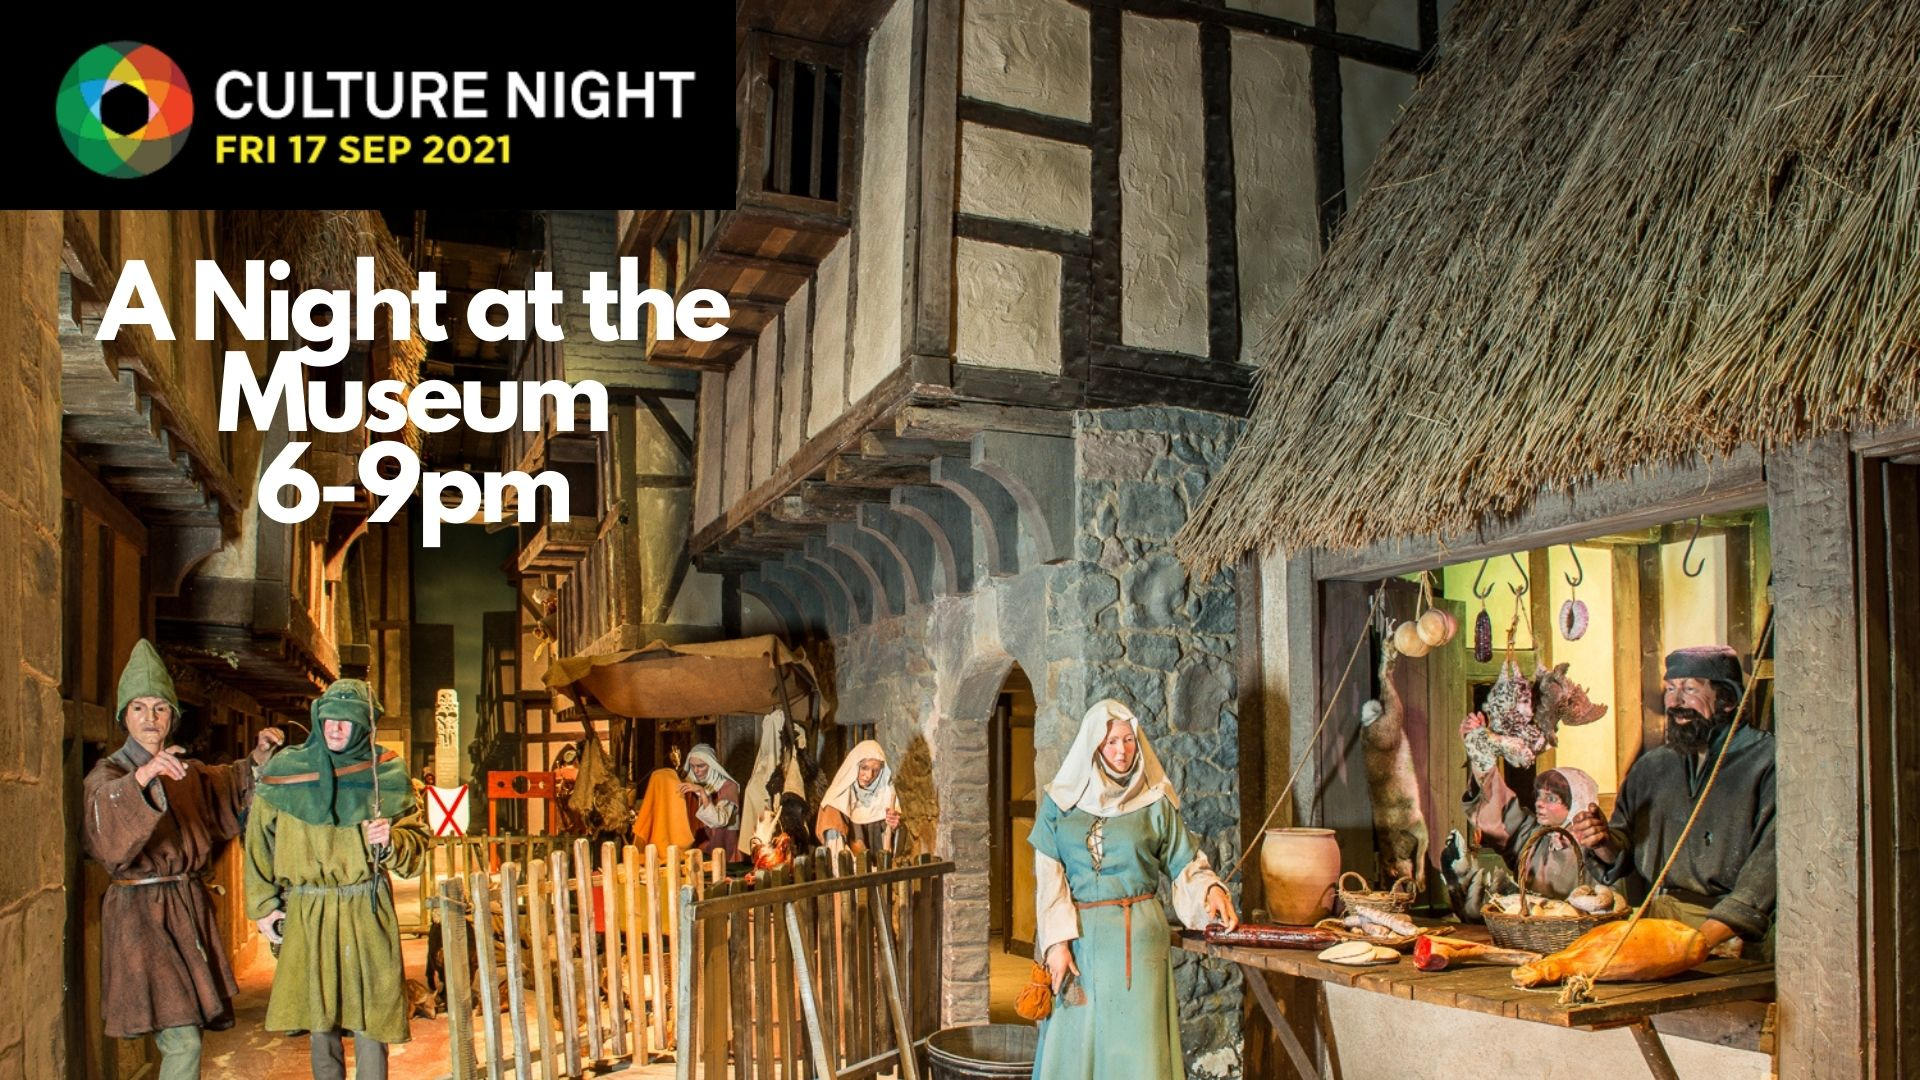 A Night at the Museum Free Entry 6-9pm